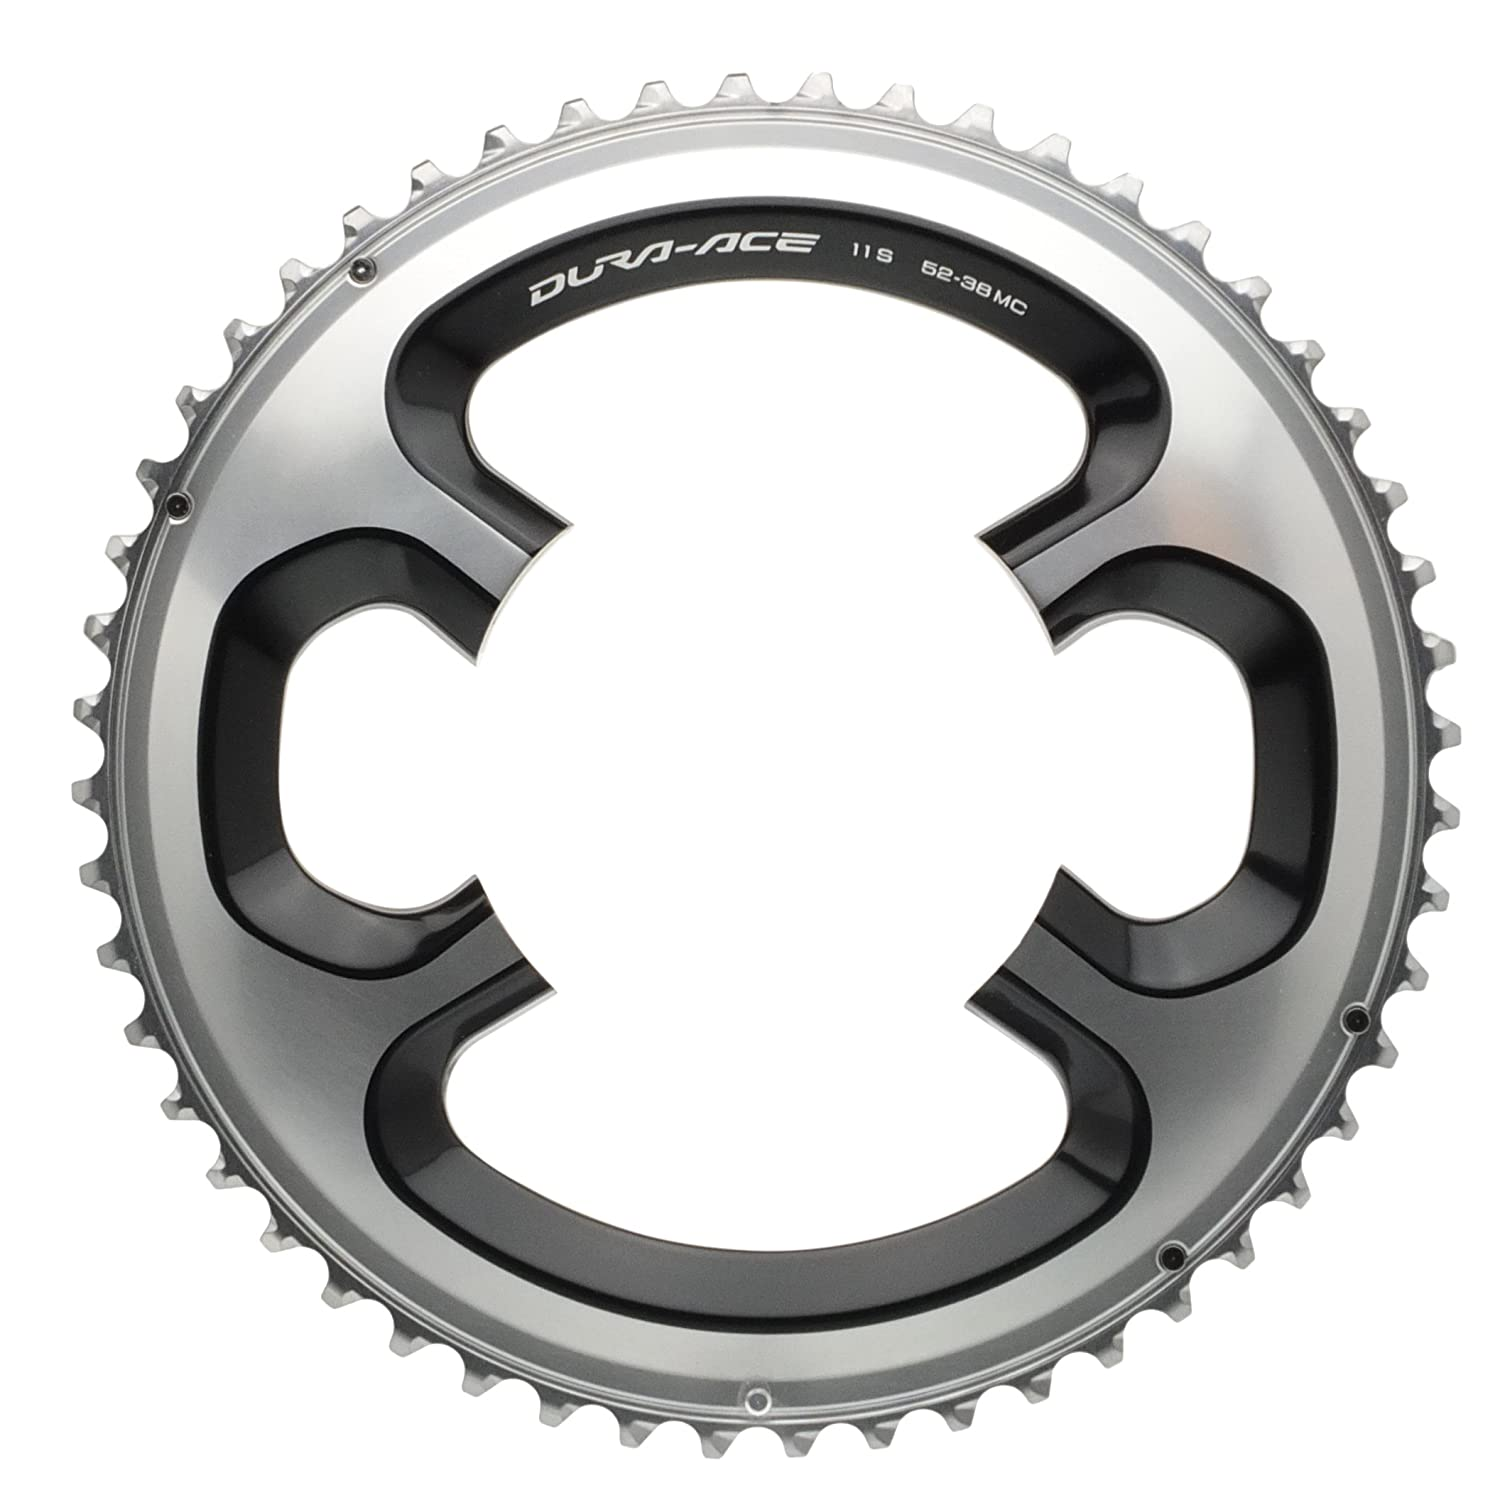 Chainring 52T-MC Dura-Ace FC-9000 For 52 38T